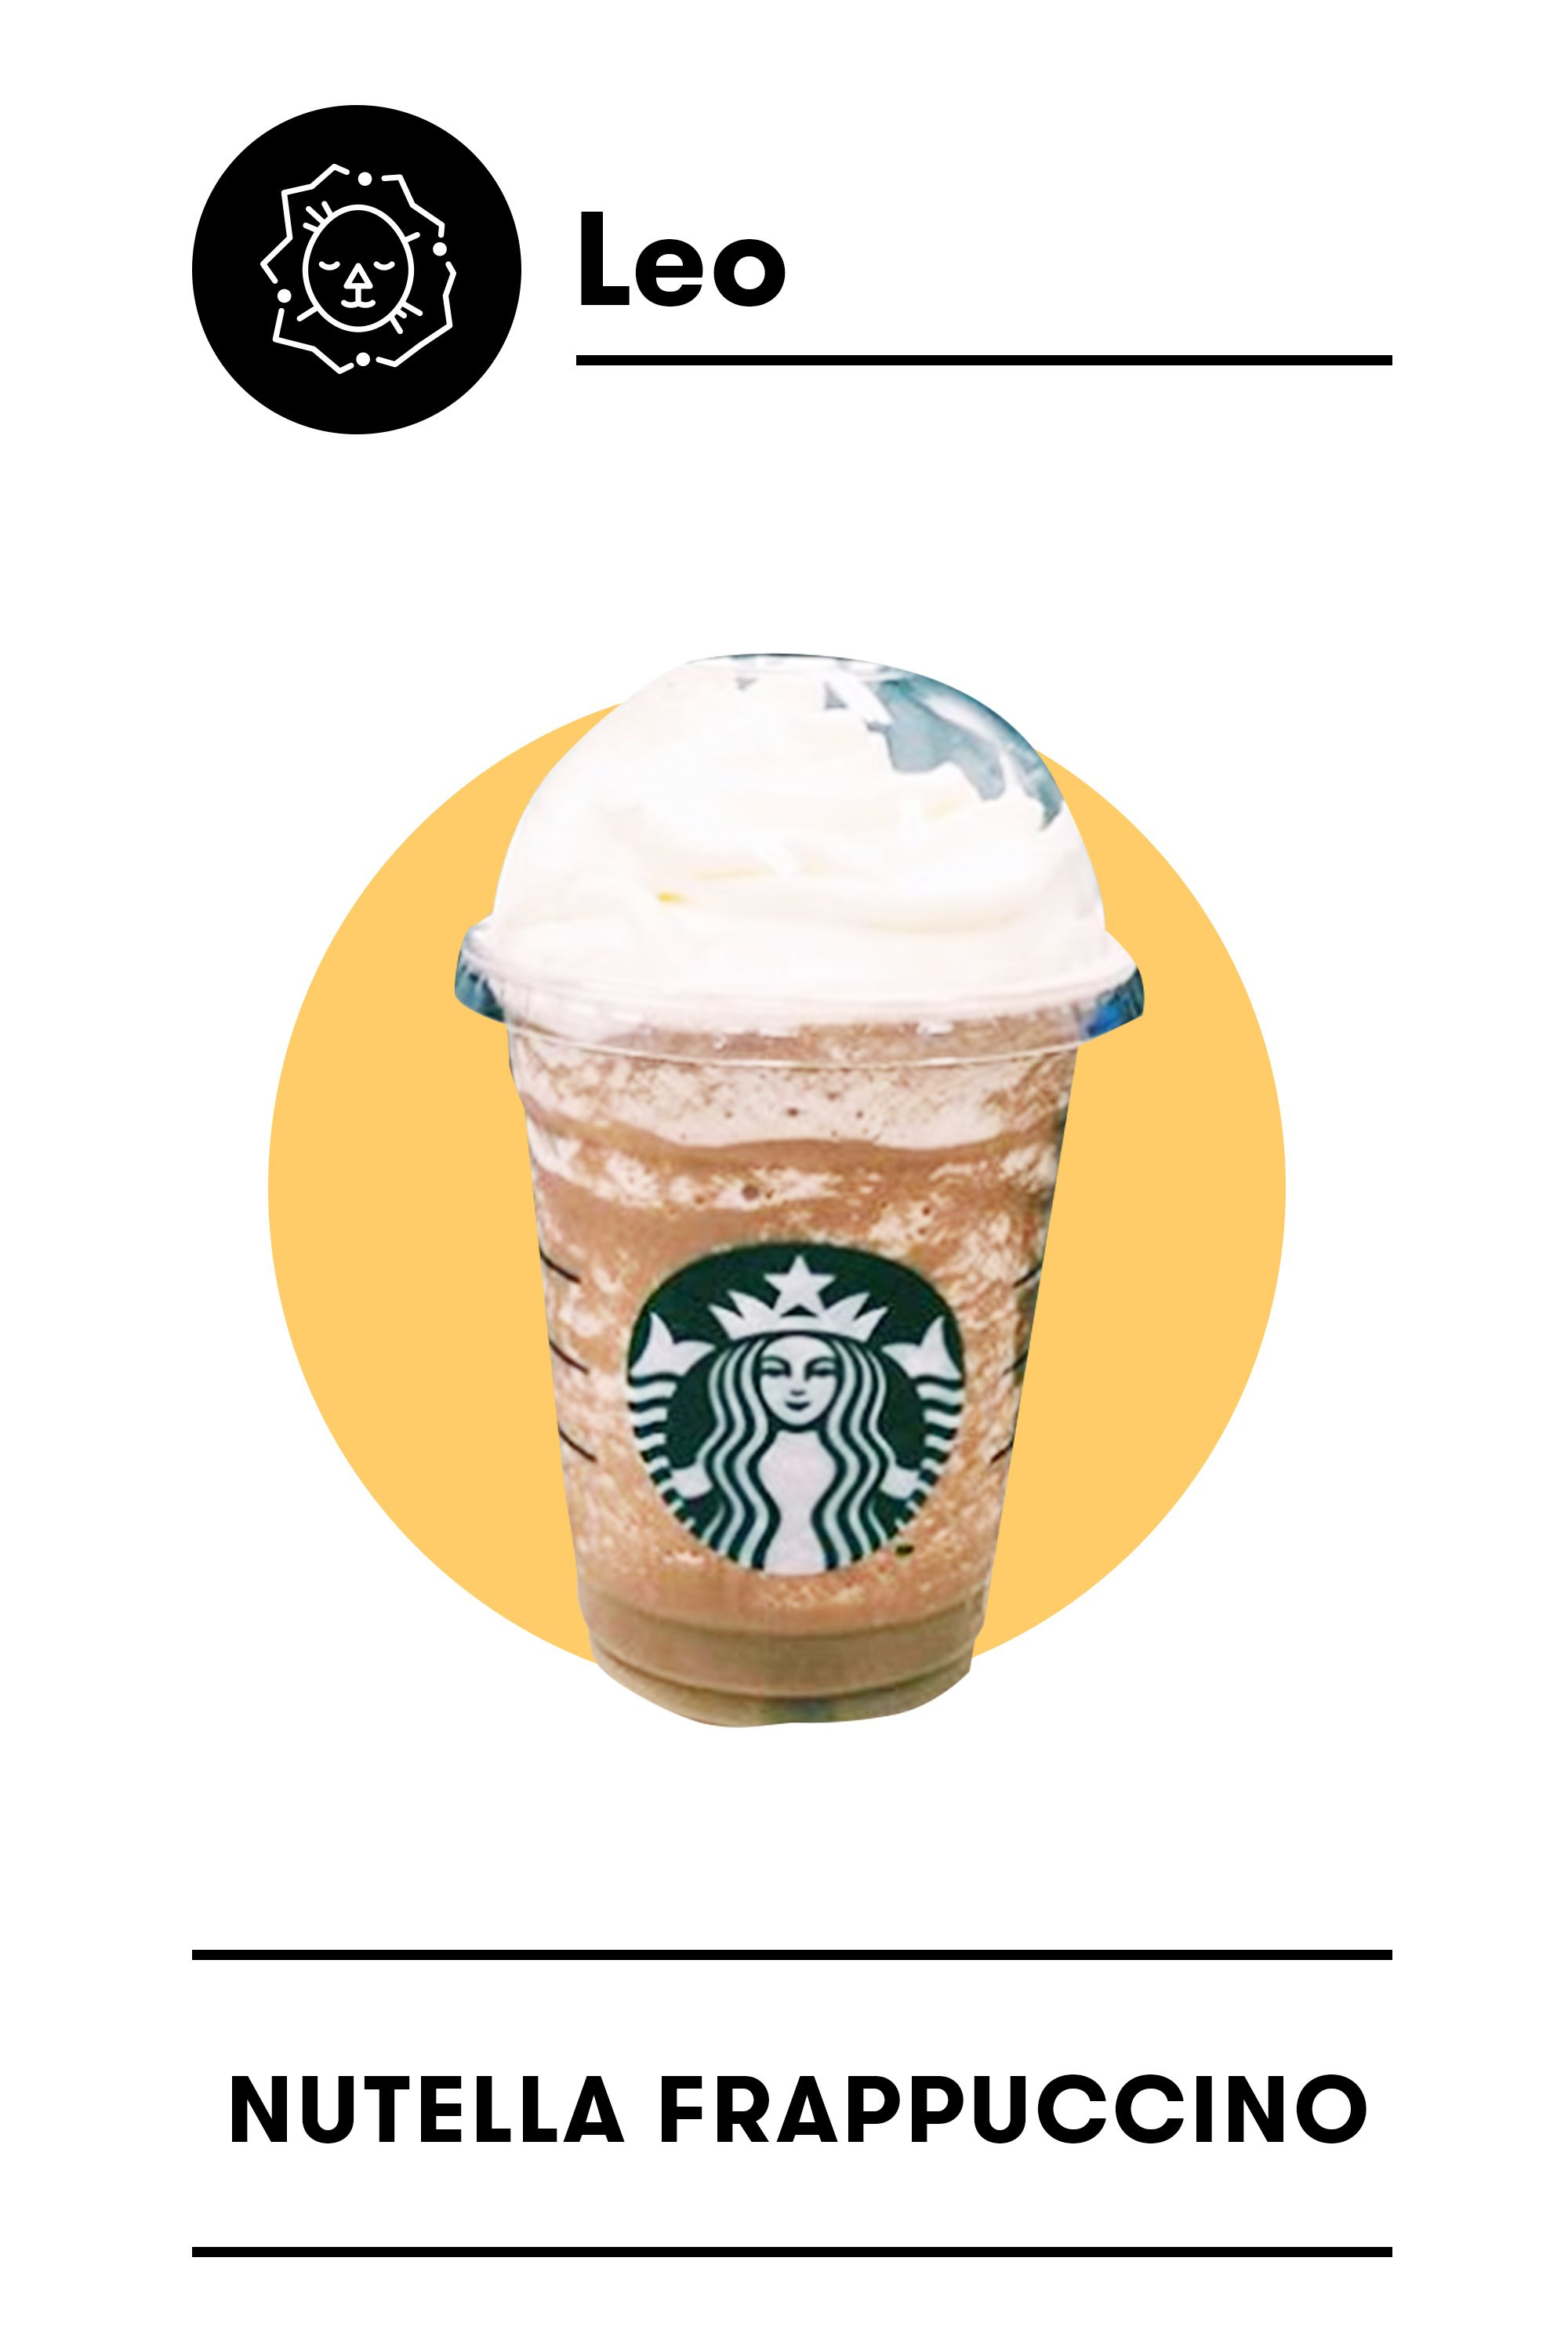 Your Starbucks Order Based On Your Zodiac Sign